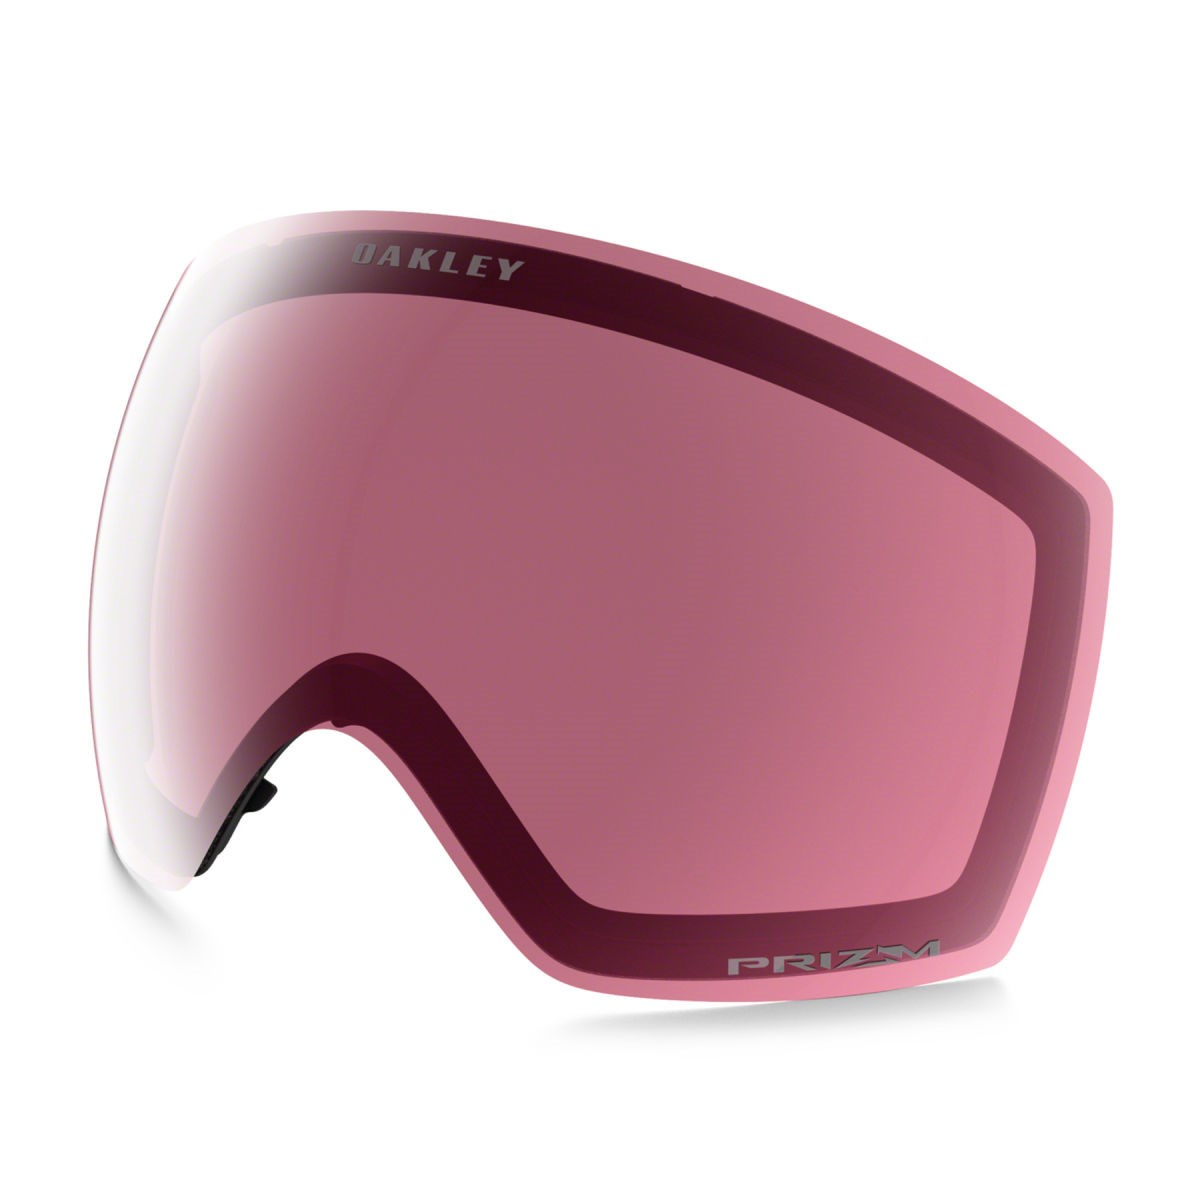 24c5af7220 Oakley Flight Deck XM Prizm Rose Spare Replacement Lens £60.00